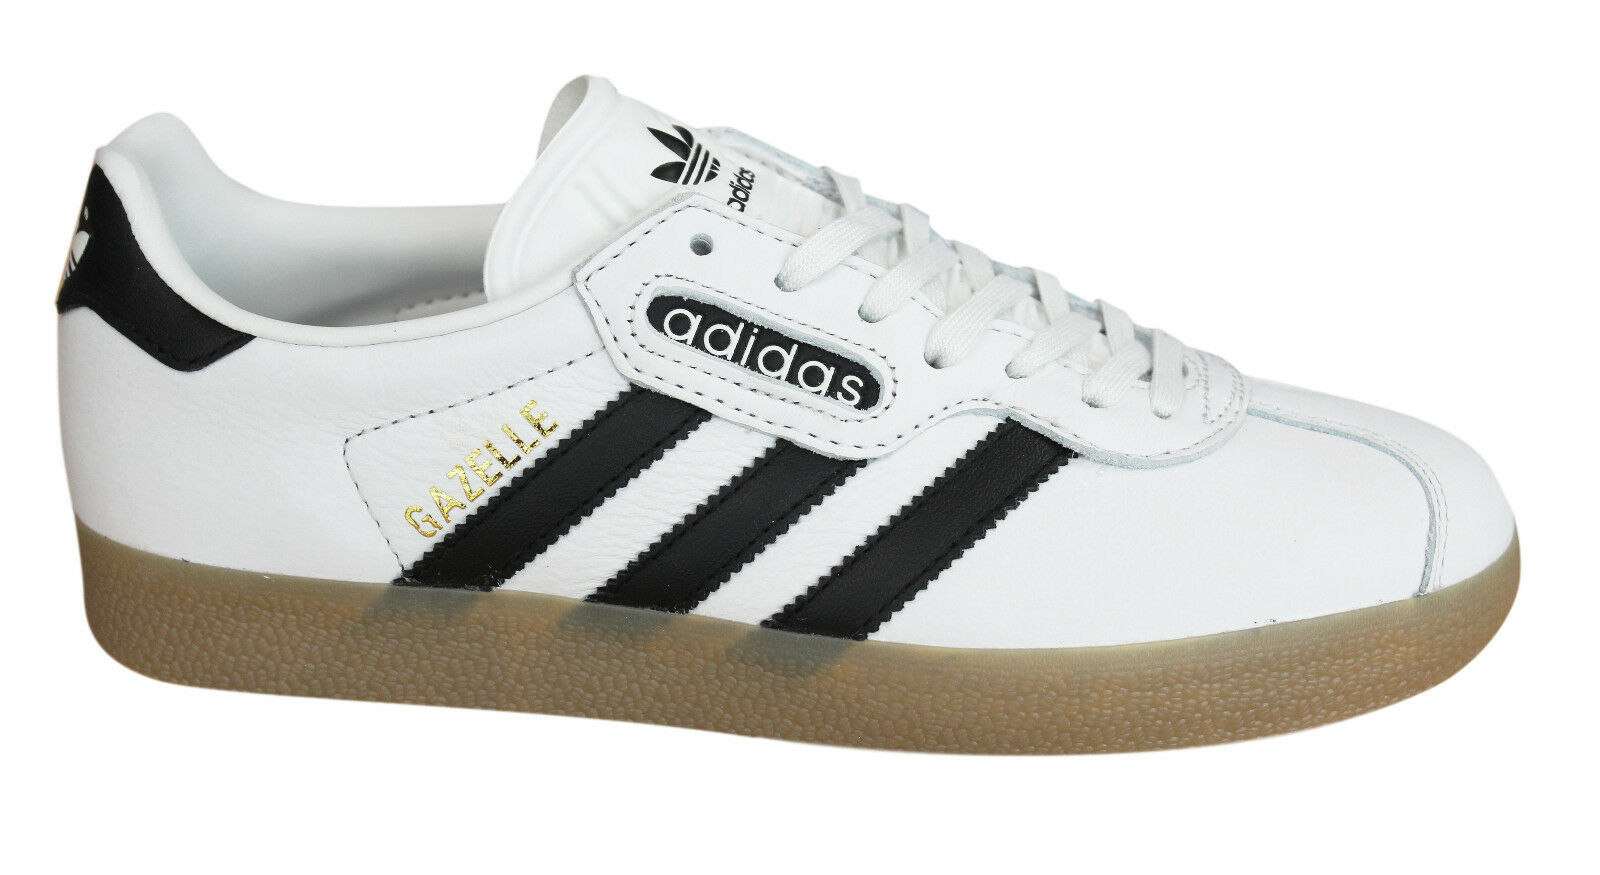 fbf4271613 Details about Adidas Originals Gazelle Super Mens Trainers Lace Up Shoes  Leather BB5243 D32